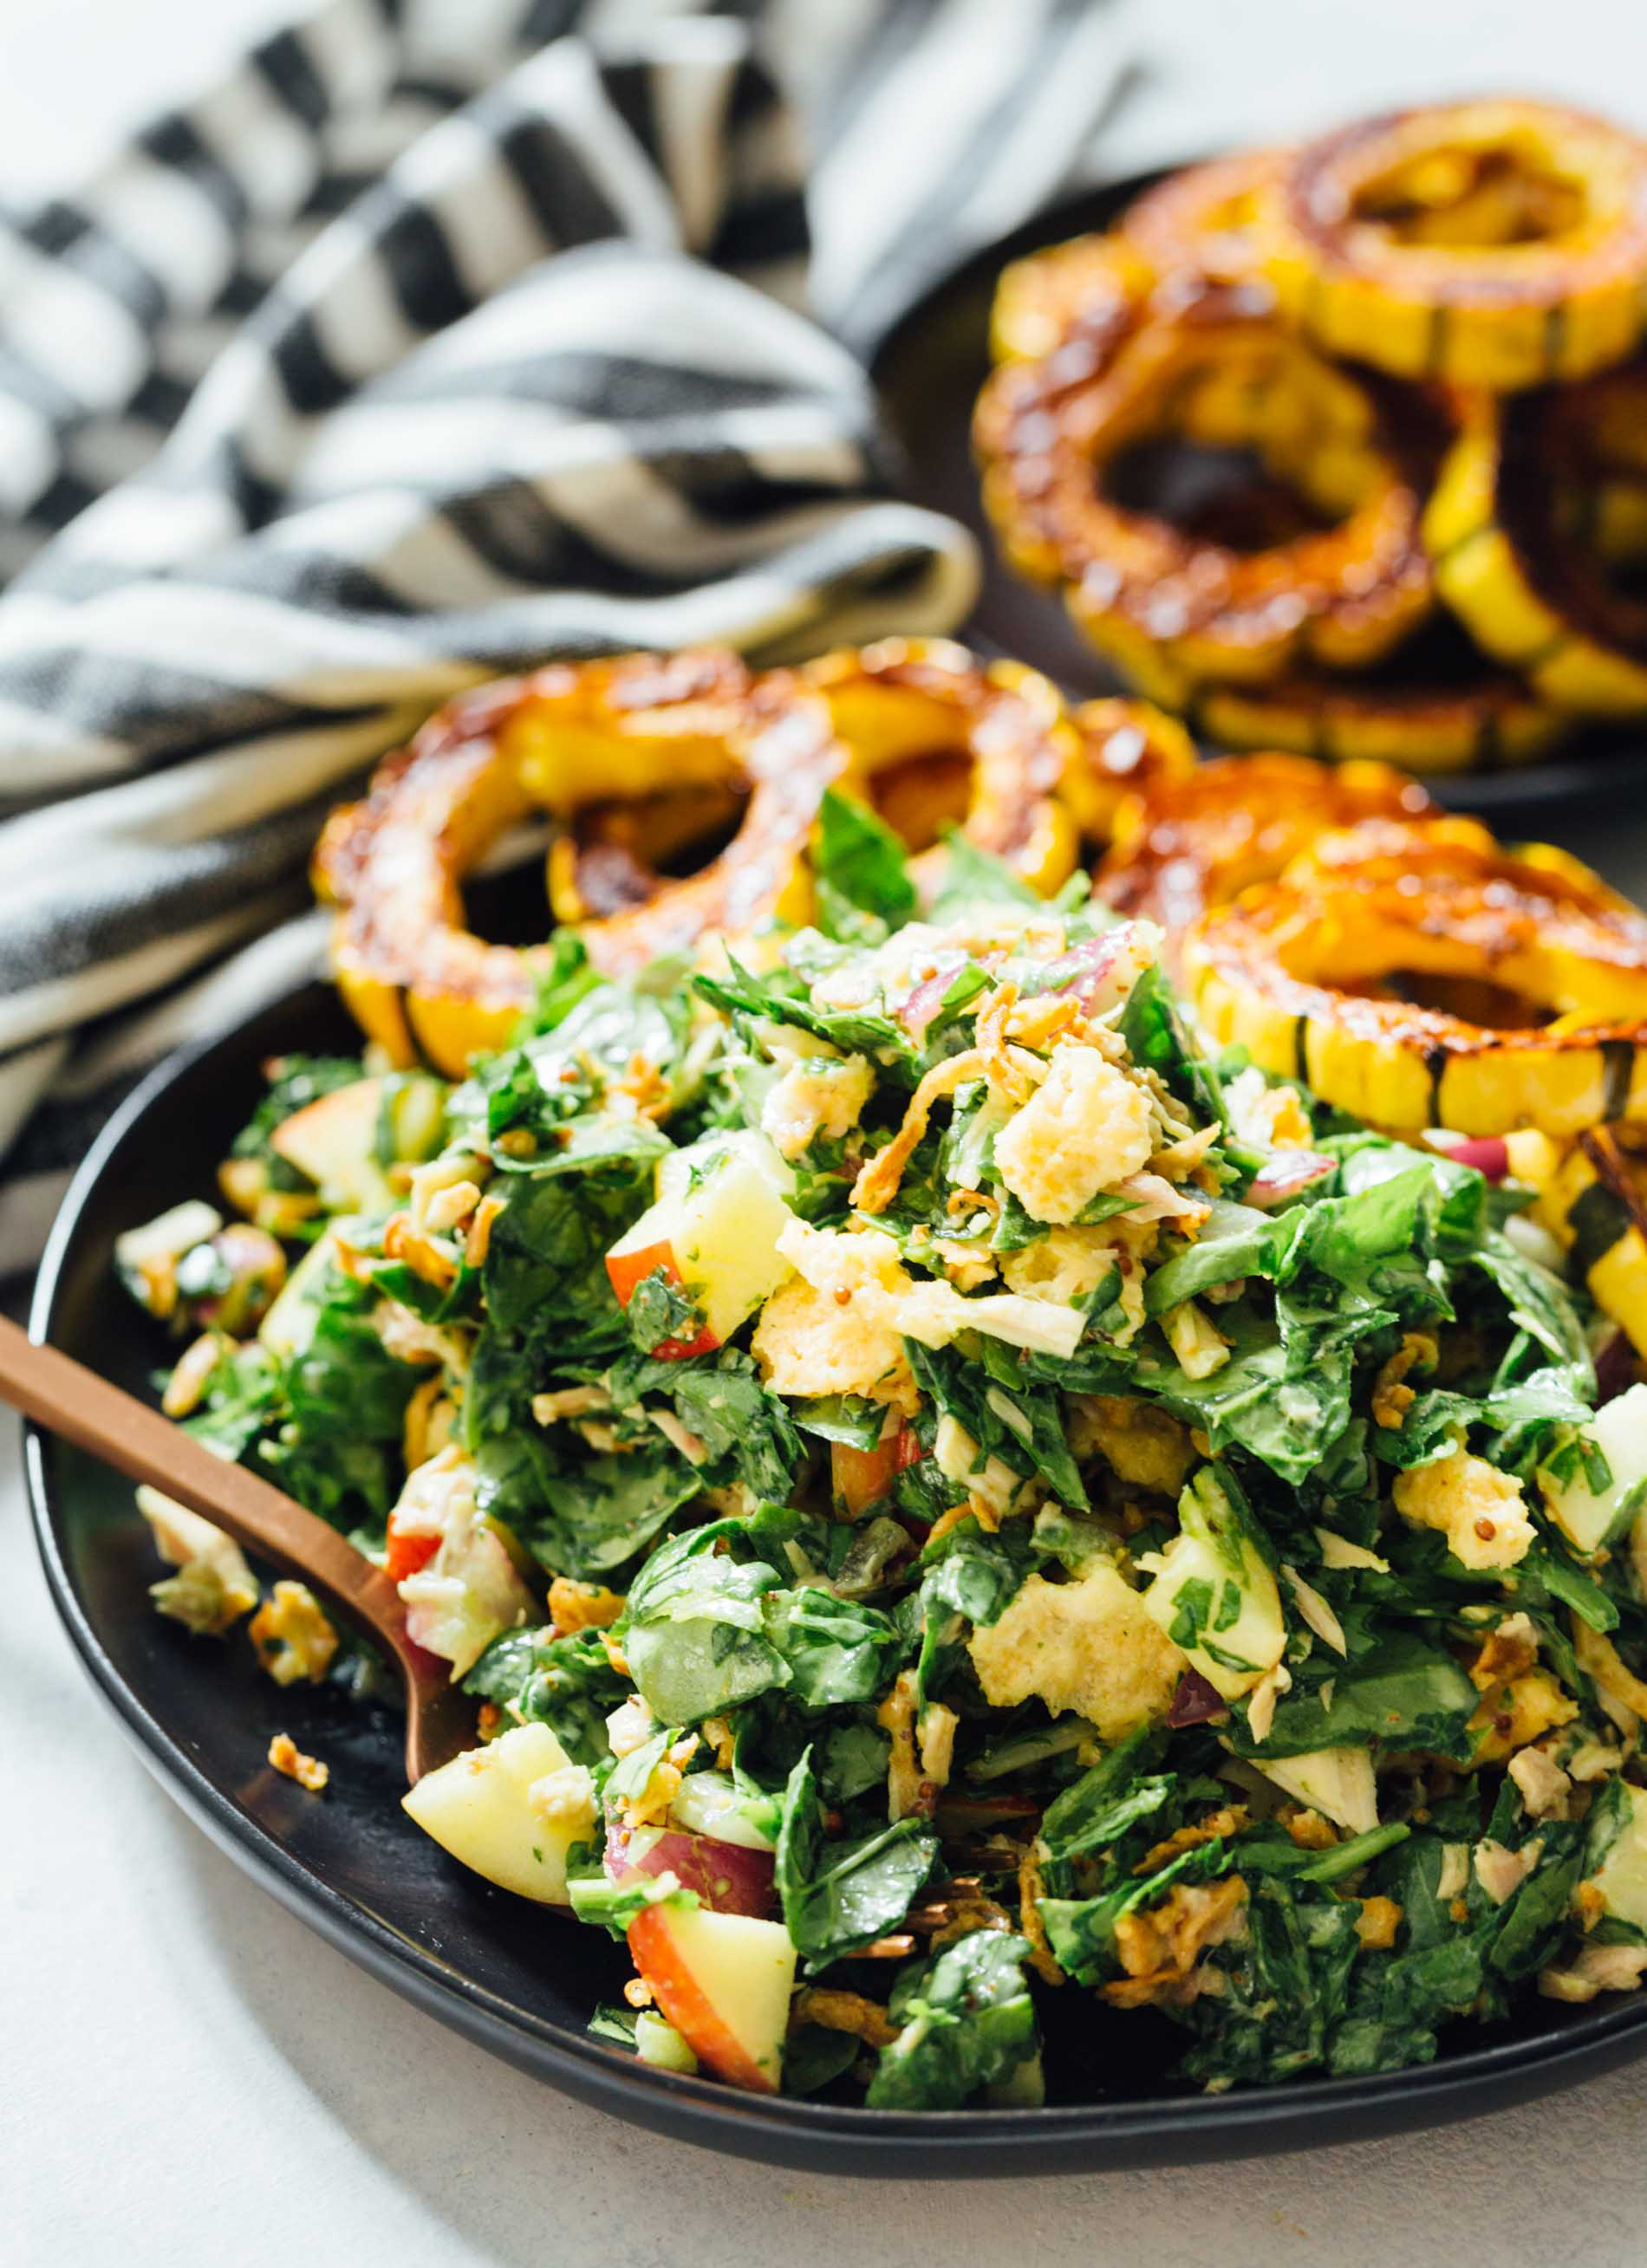 A spinach tuna salad topped with roasted delicata squash is a heavenly combination! The delicata squash gives it a unique yet distinct sweetness but it also adds volume to make this salad hearty and filling!